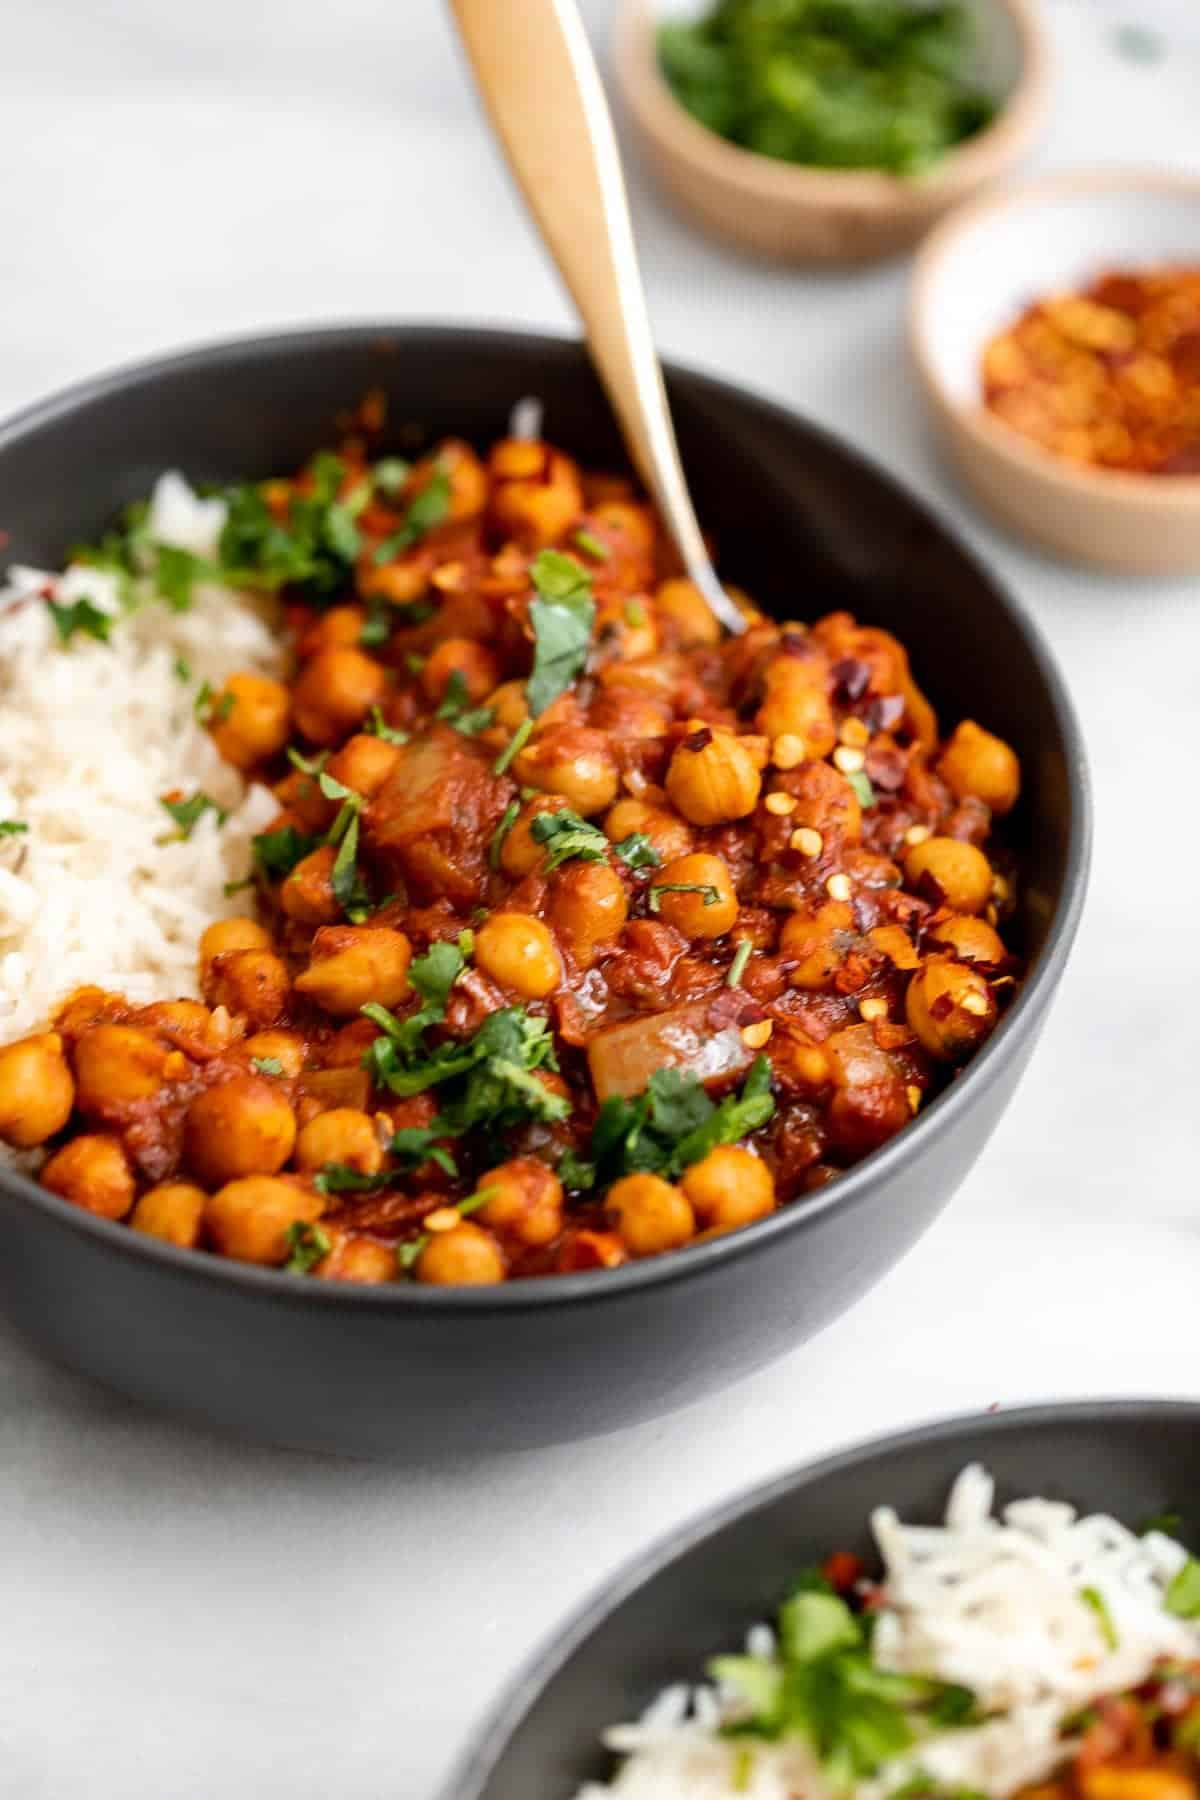 chana masala in a bowl with rice